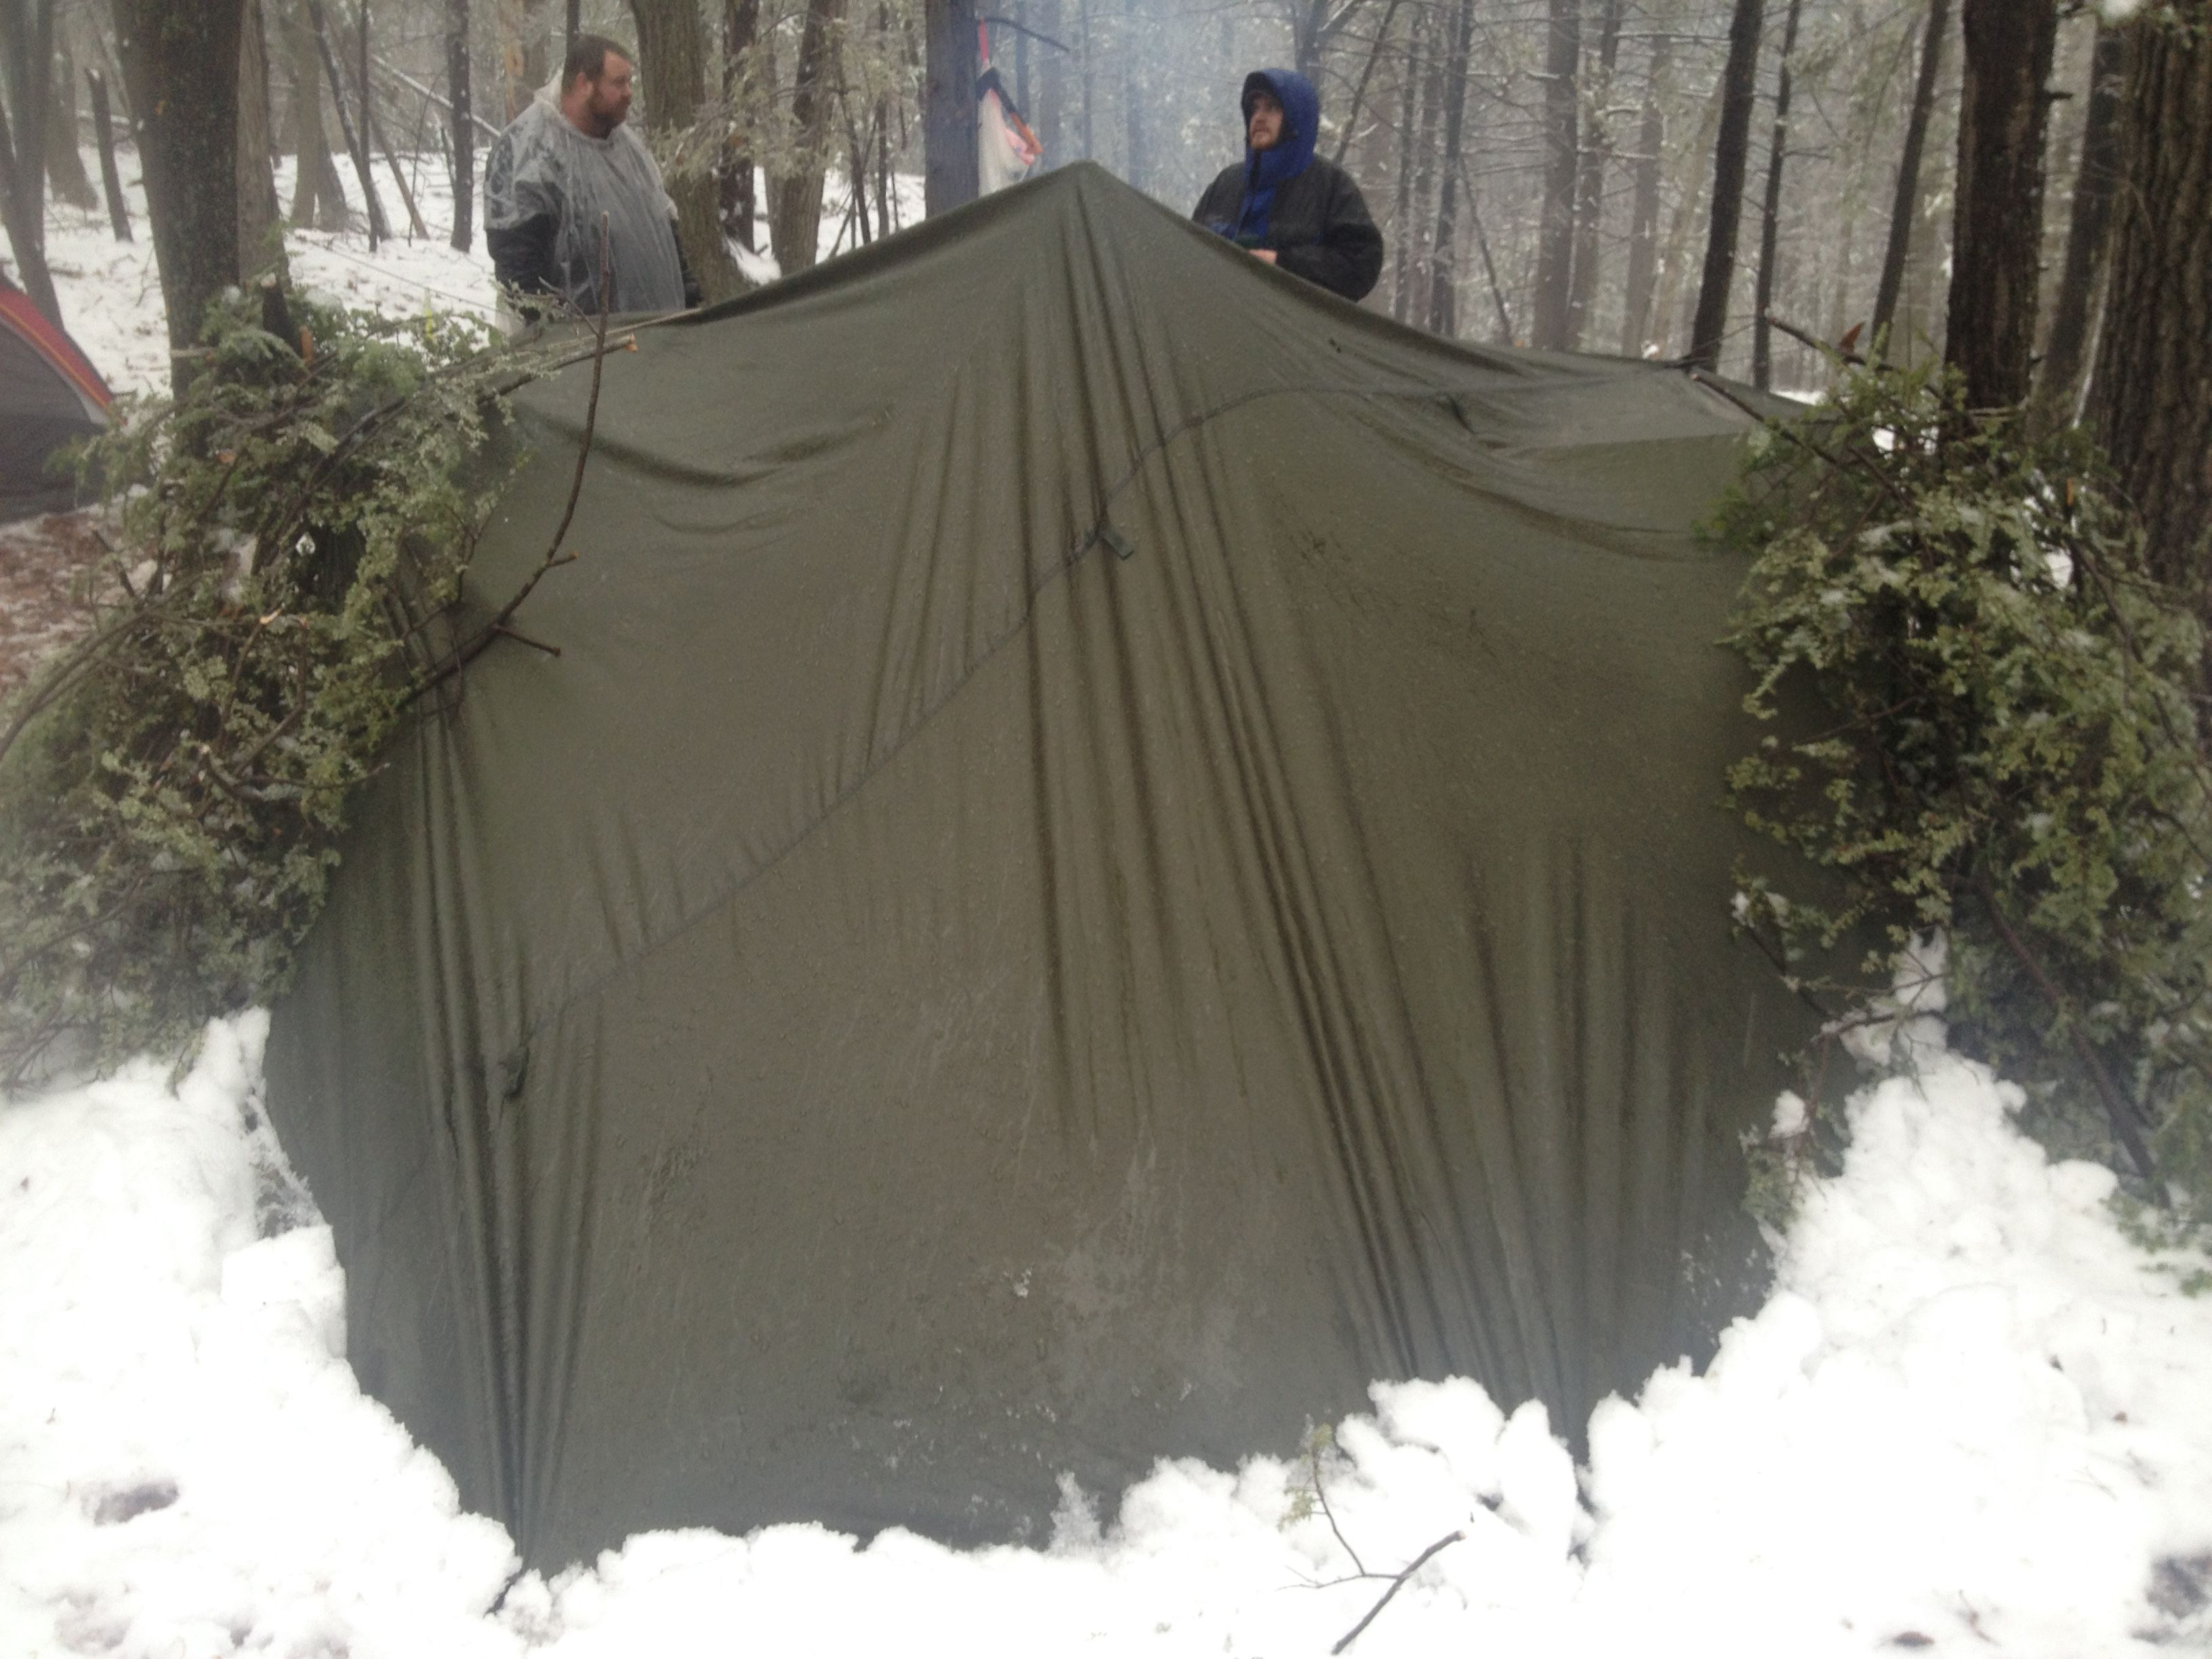 SnugPak All Weather Shelter Review - (Backside of Lean-To Shelter) - Nylon & SnugPak All Weather Shelter Review - (Backside of Lean-To Shelter ...